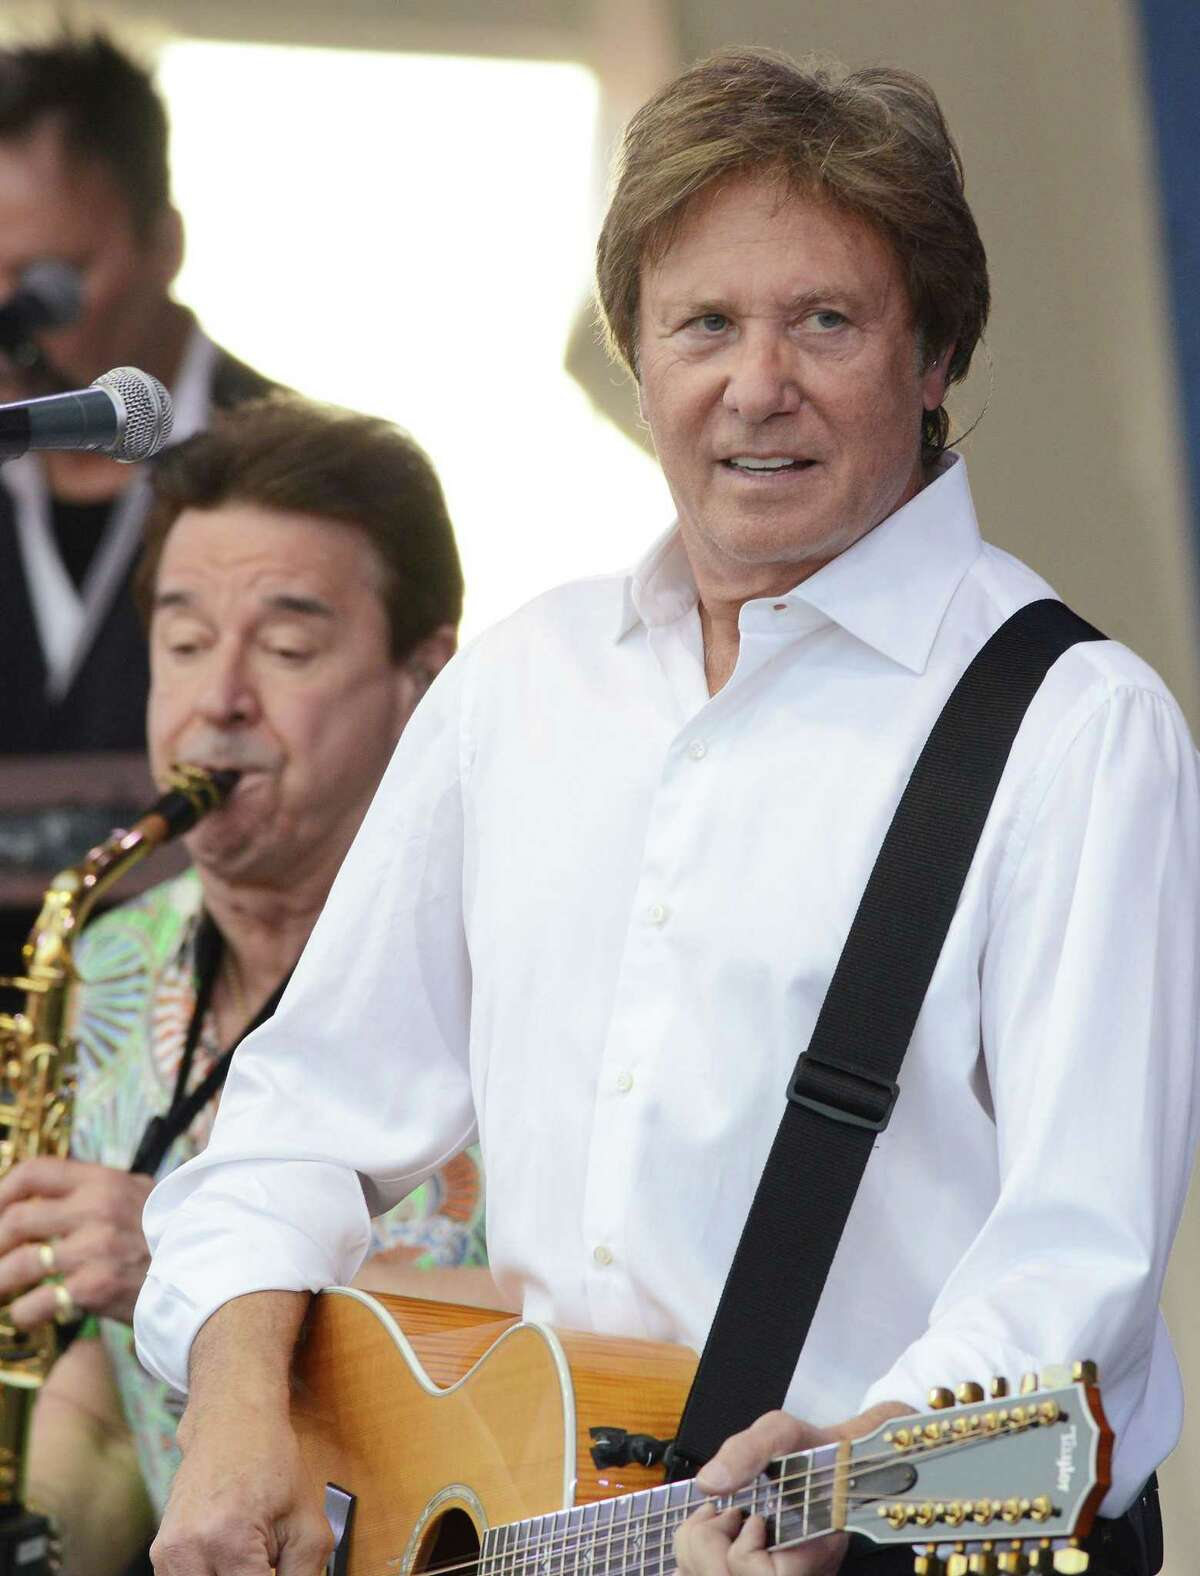 The Rock and Roll Hall of Fame act (inducted in 2016) returns to one of its favorite stomping grounds to deliver the bouncy hits of its early '70s era and the more synth-flavored ballads of the '80s and '90s. Original members Robert Lamm, Lee Loughnane, James Pankow and Walt Parazaider lead the band through its impressive catalog with plenty of fun and dynamic choreography. JD & the Straight Shot open. 8 p.m. Friday. Majestic Theatre, 224 E. Houston St. $48-$88. 210-226-5700, majesticempire.com -- Hector Saldana